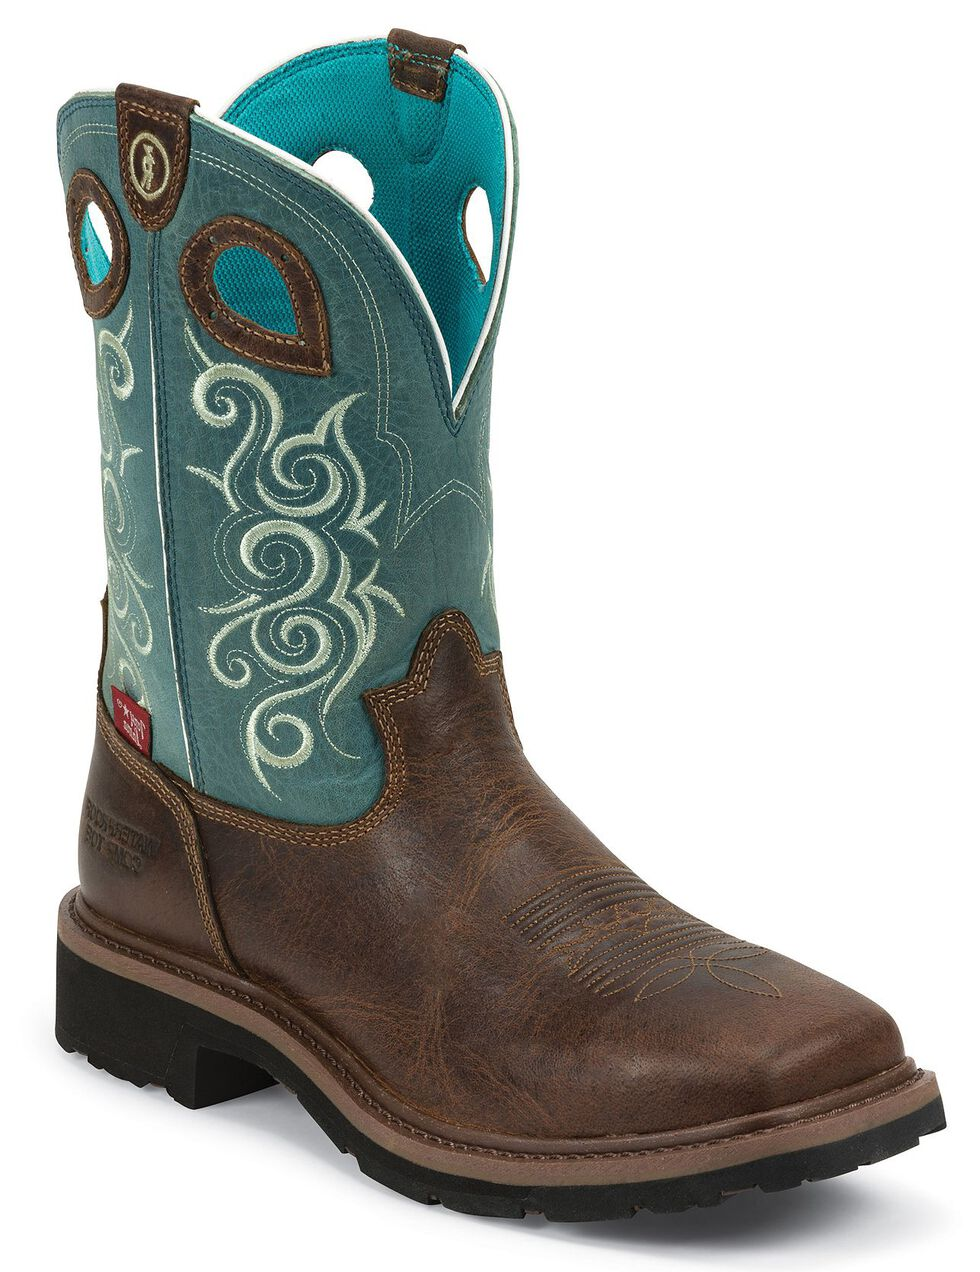 Tony Lama Women's Gladewater 3R Work Boots - Composite Toe, Brown, hi-res